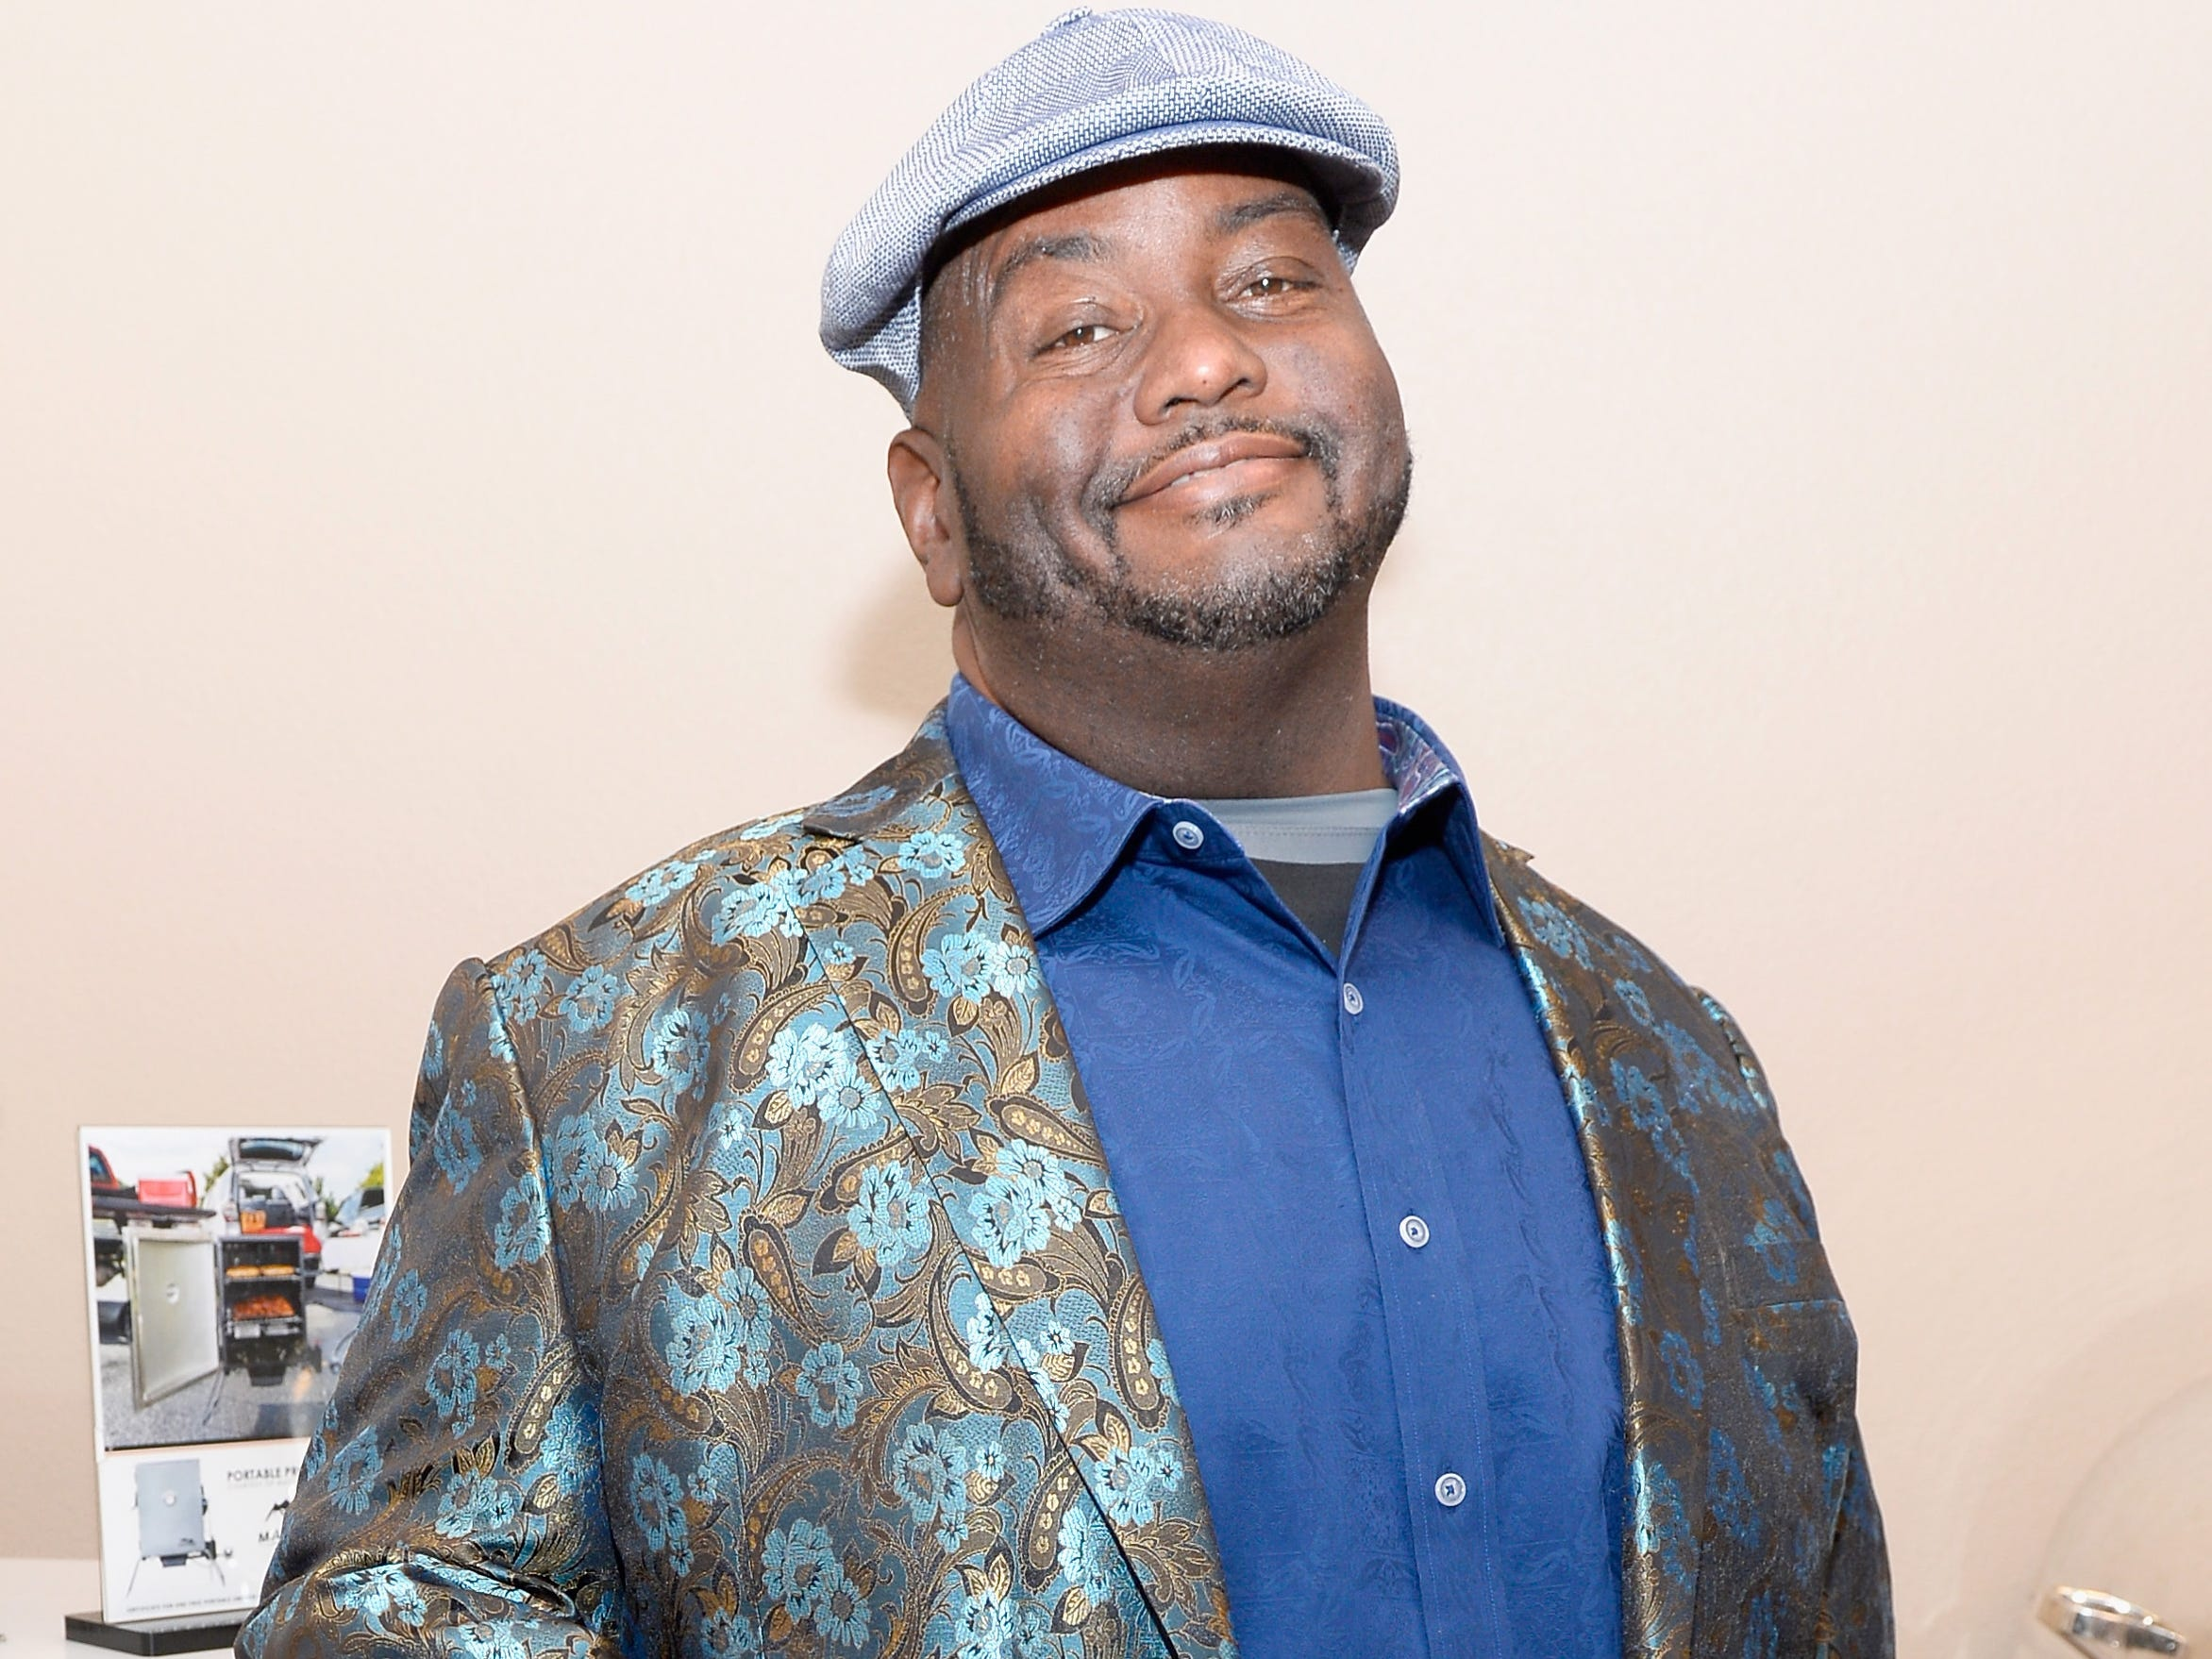 Lavell Crawford performs at Helium Comedy Club on June 27-30, 2019.